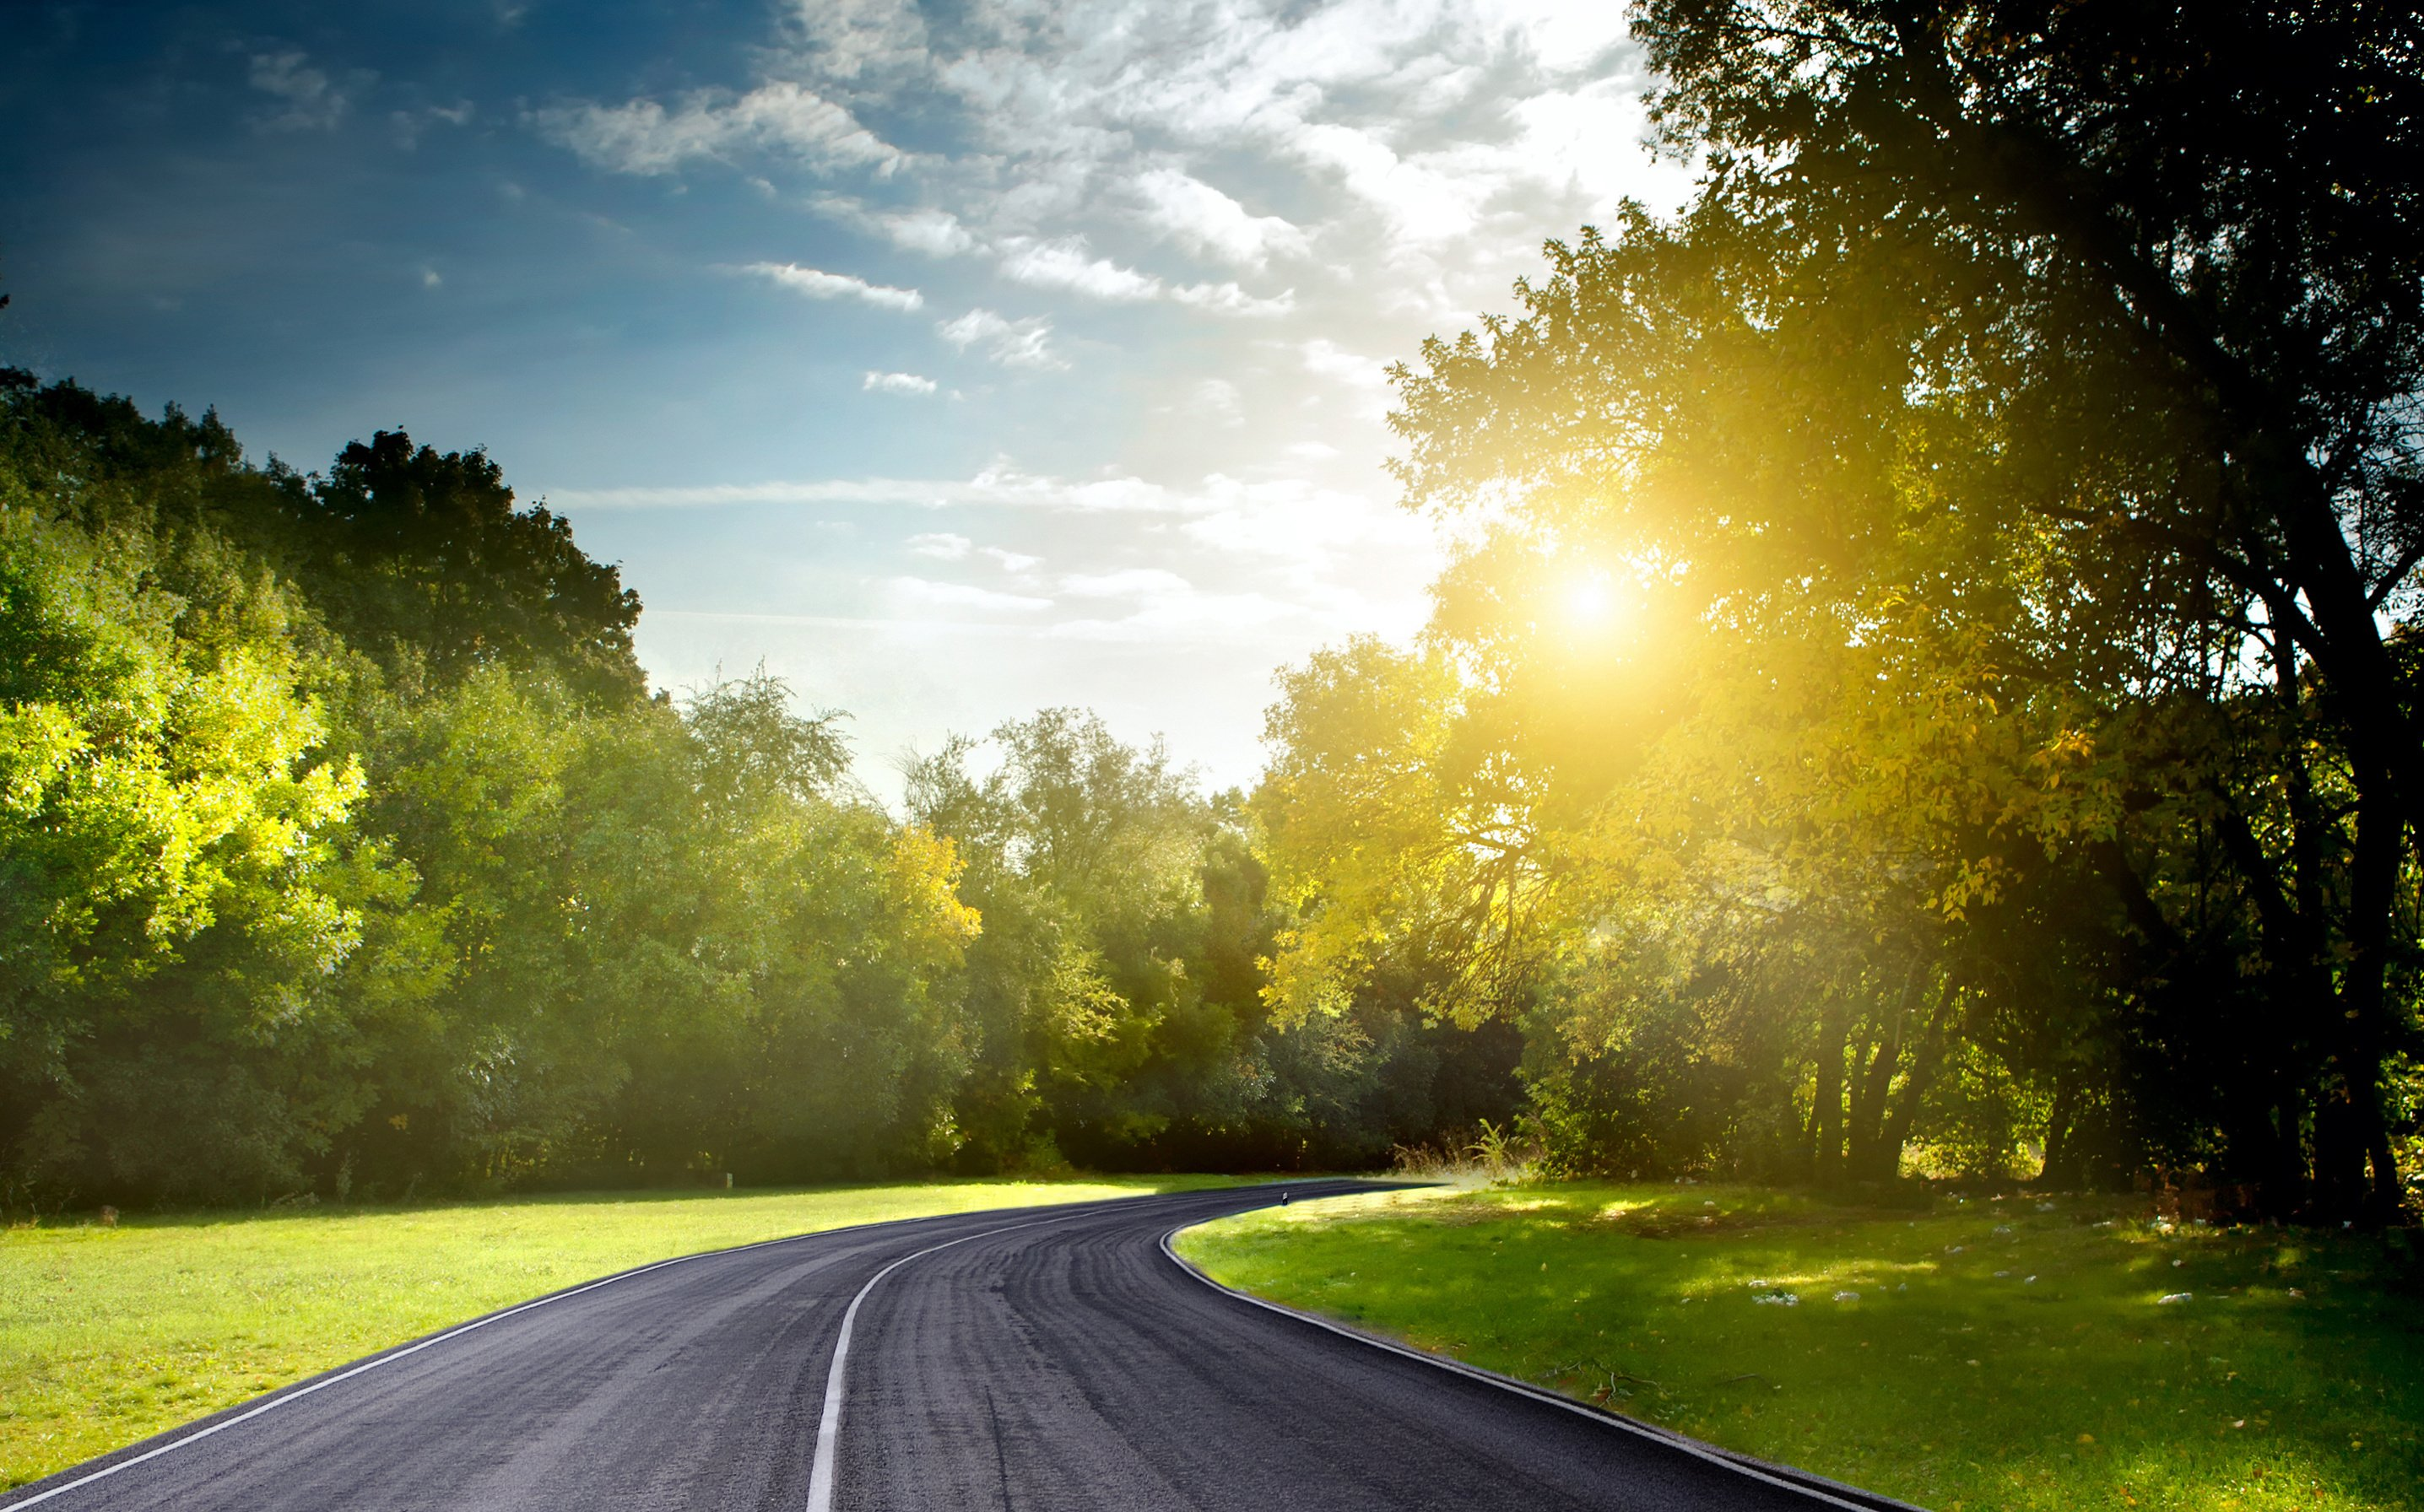 Road Nature Sun Light Summer Sunrise Sunset Wallpaper